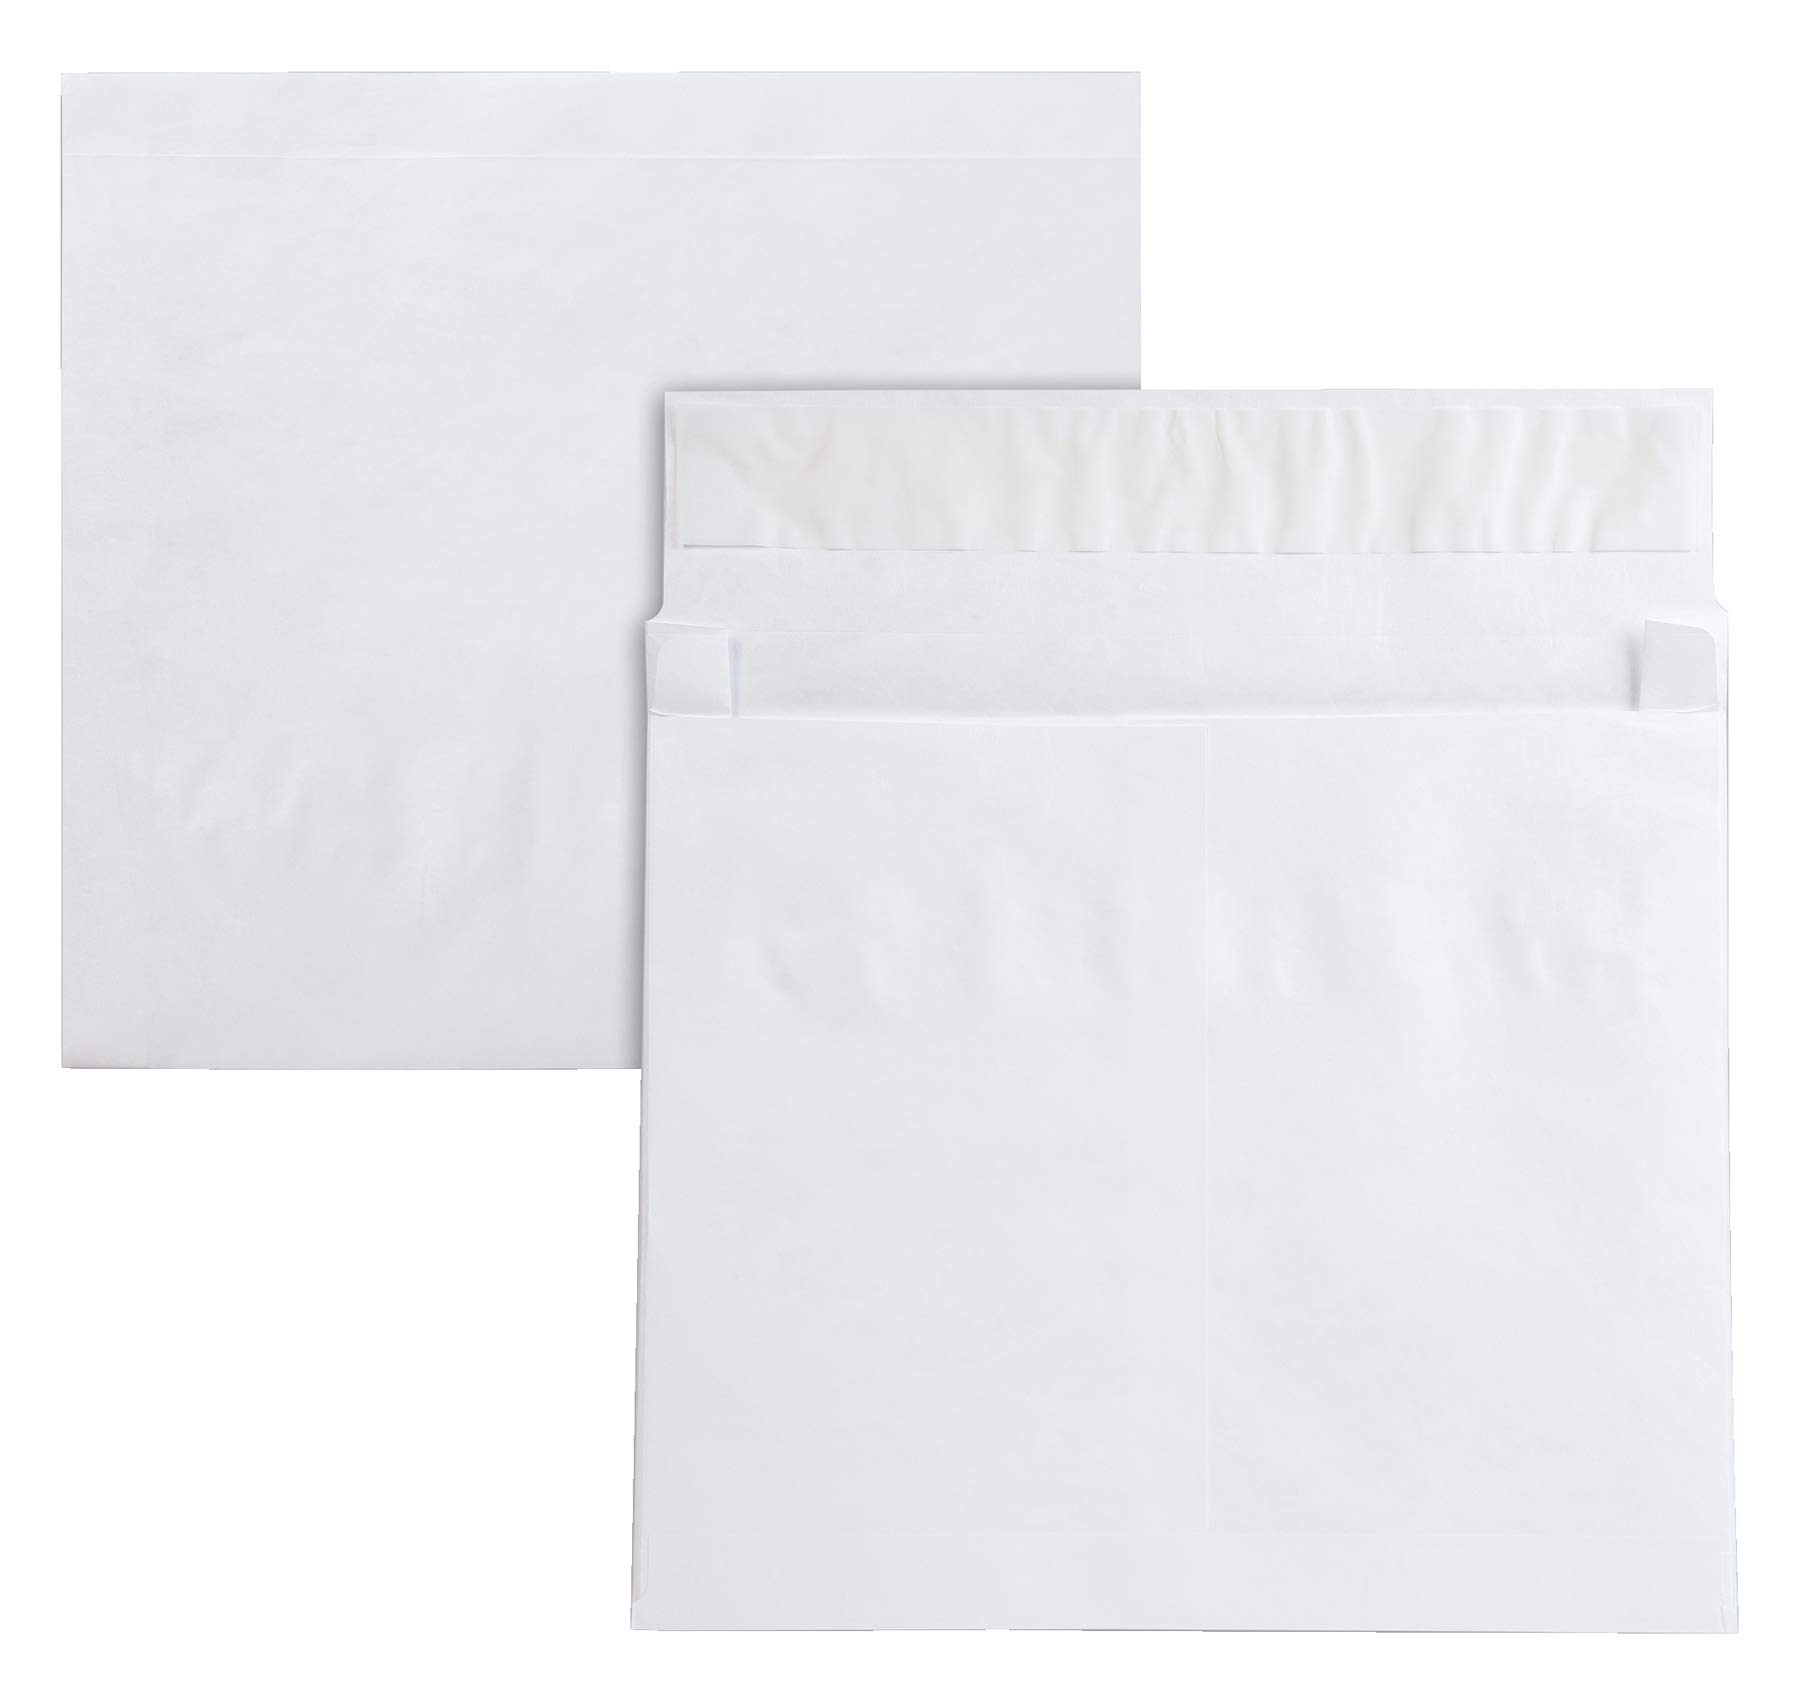 QualityPark Tyvek Open Side Envelope, 10 x 13 x 2 Inches, Pack of 25 (R4611) by Quality Park